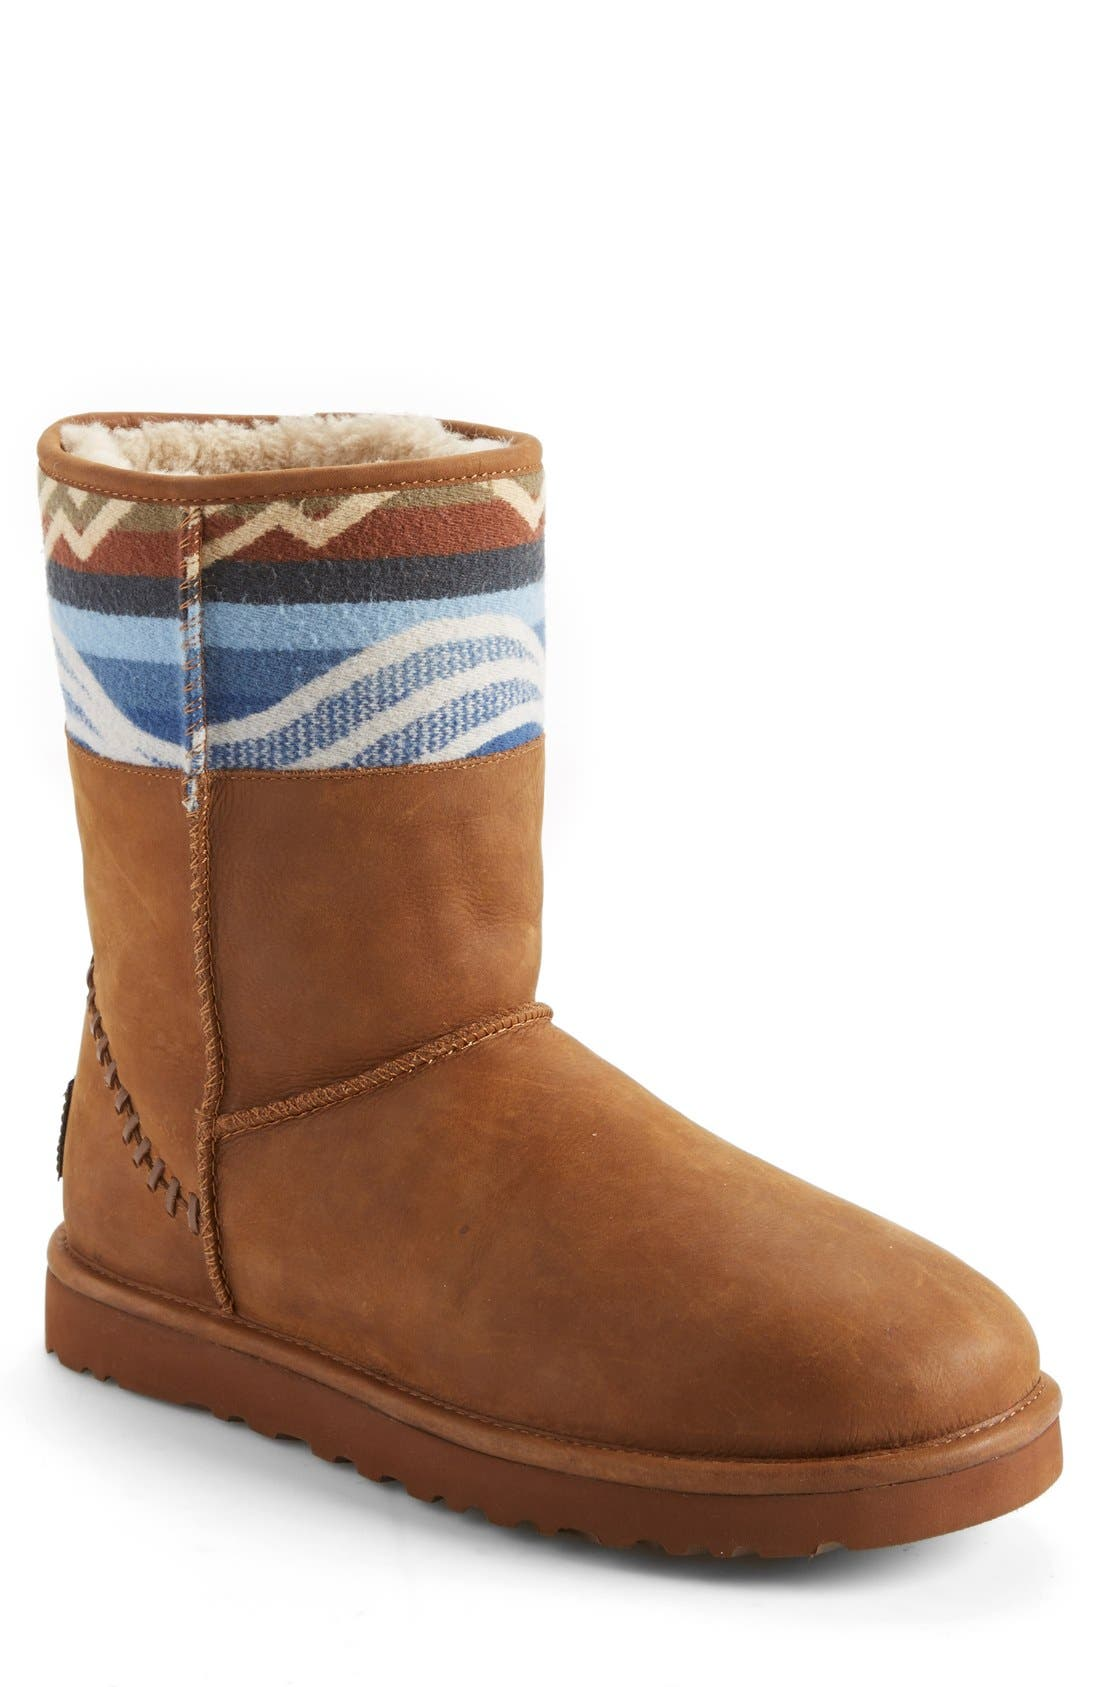 Shop now at Koalabi for a range of men's, women's and kid's Australian sheepskin boots & slippers. Experience style & comfort that your feet will love.